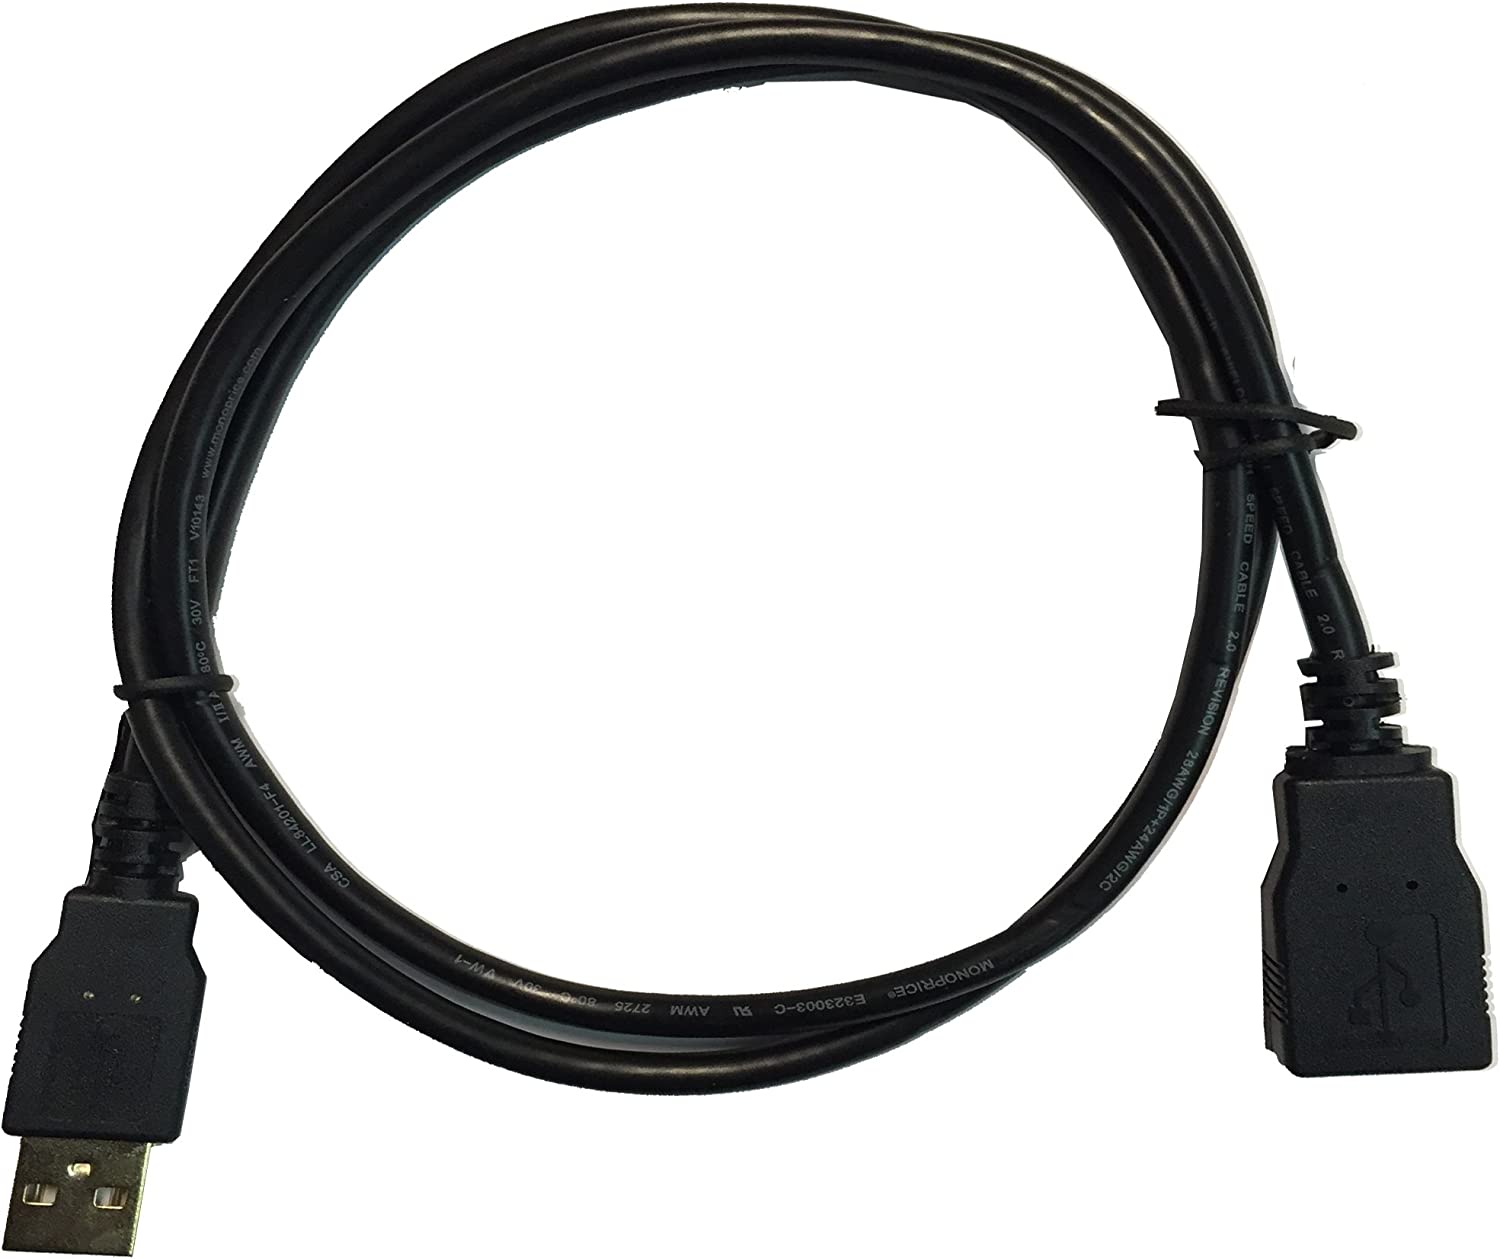 USB Cable for Sony HDR-CX380 High Definition Handycam Camcorder Excelshots AC Adapter Gold Plated